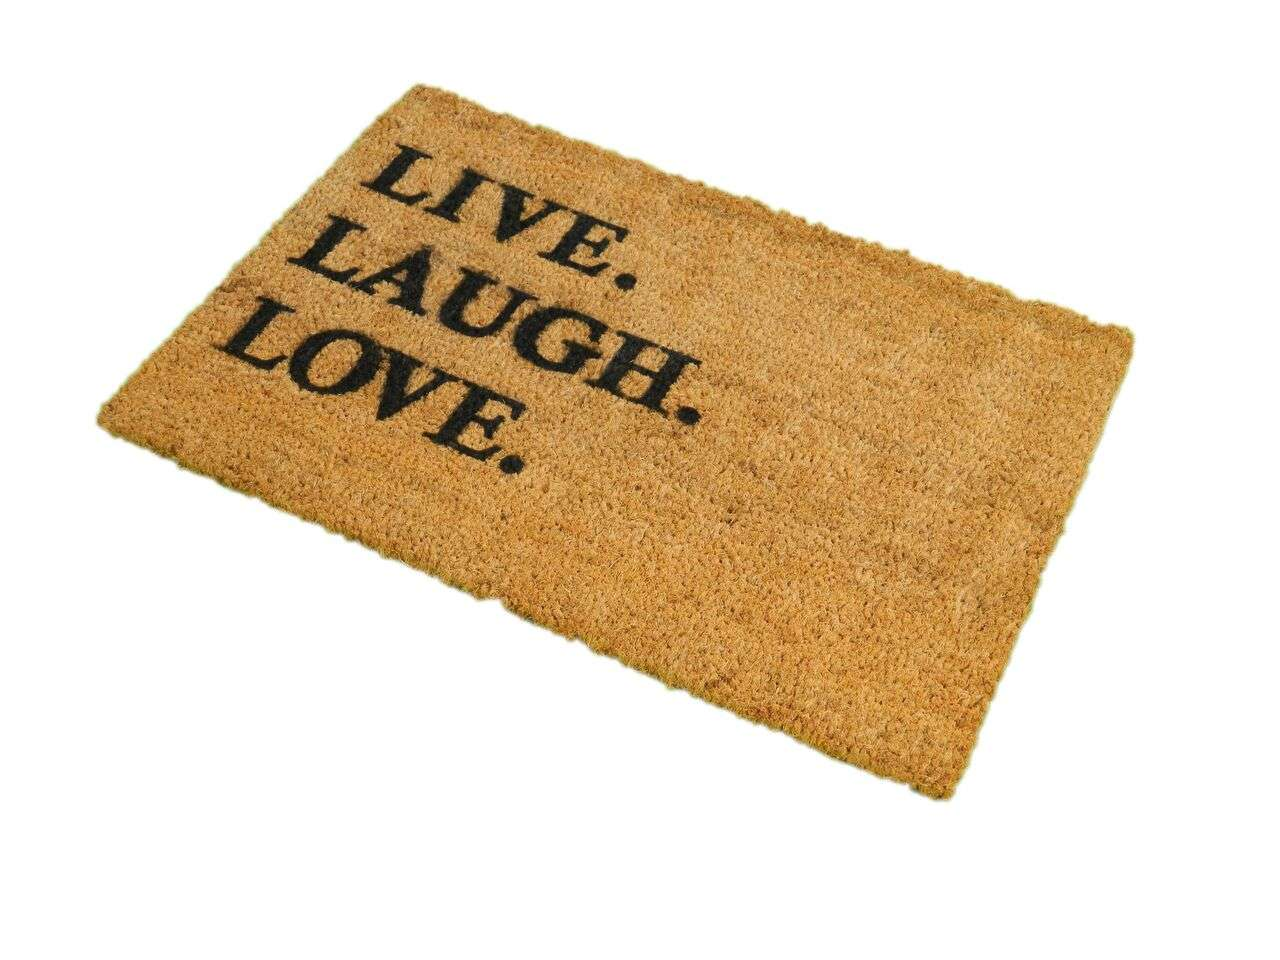 Home Printed Gifts Doormats Live Laugh Love Doormat